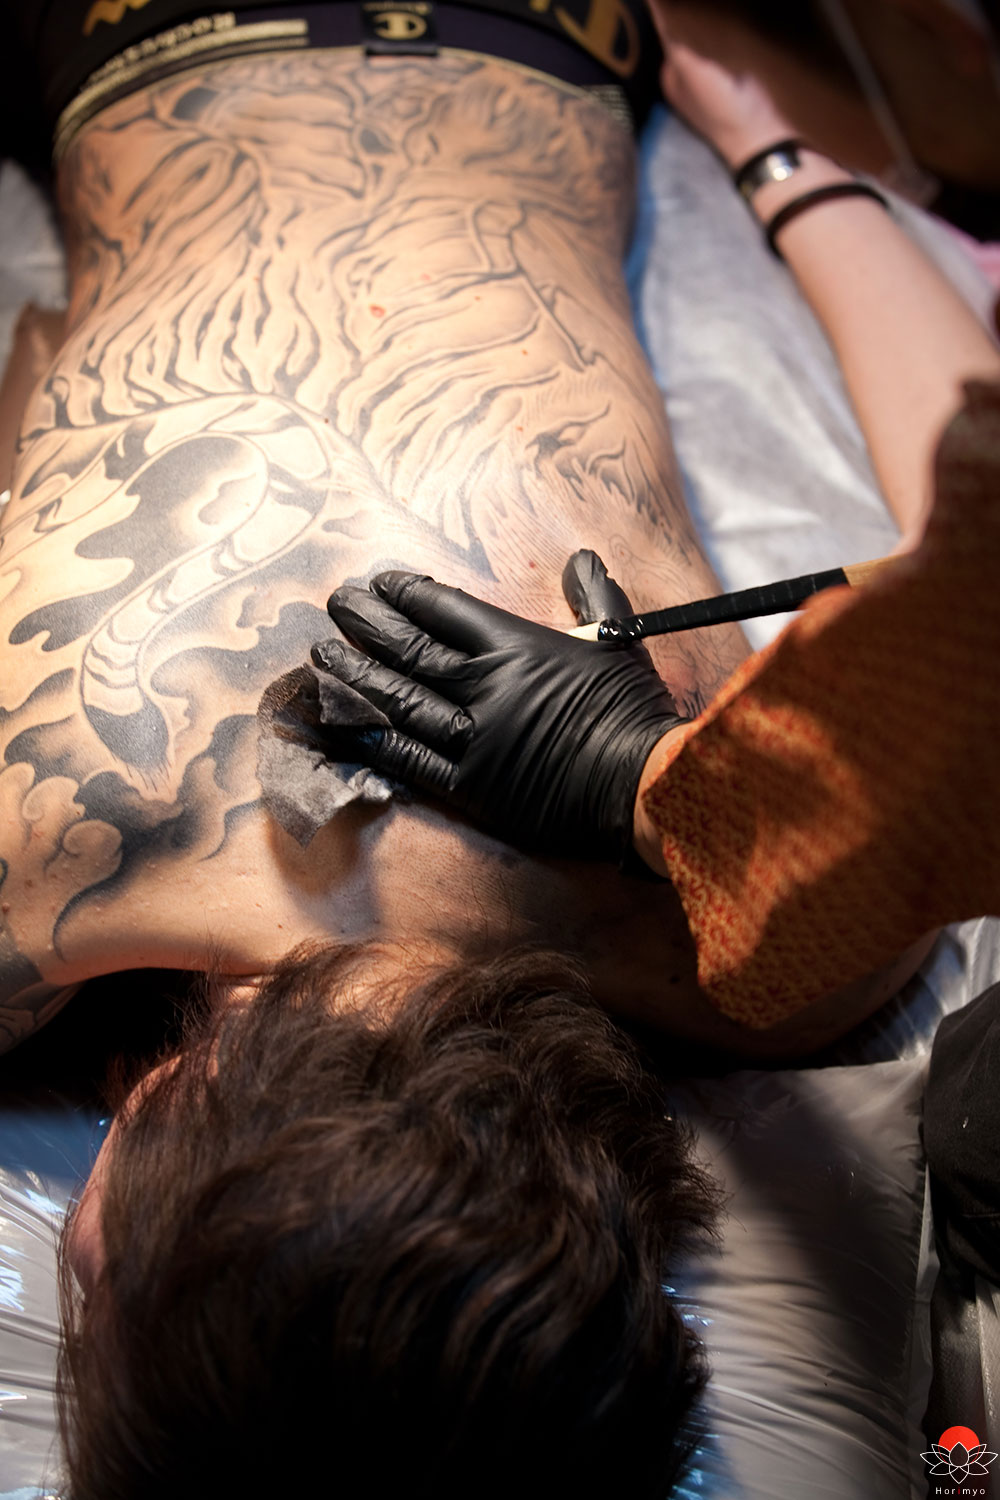 Horimyo – Traditional Japanese Tebori Tattoo Artist Interview